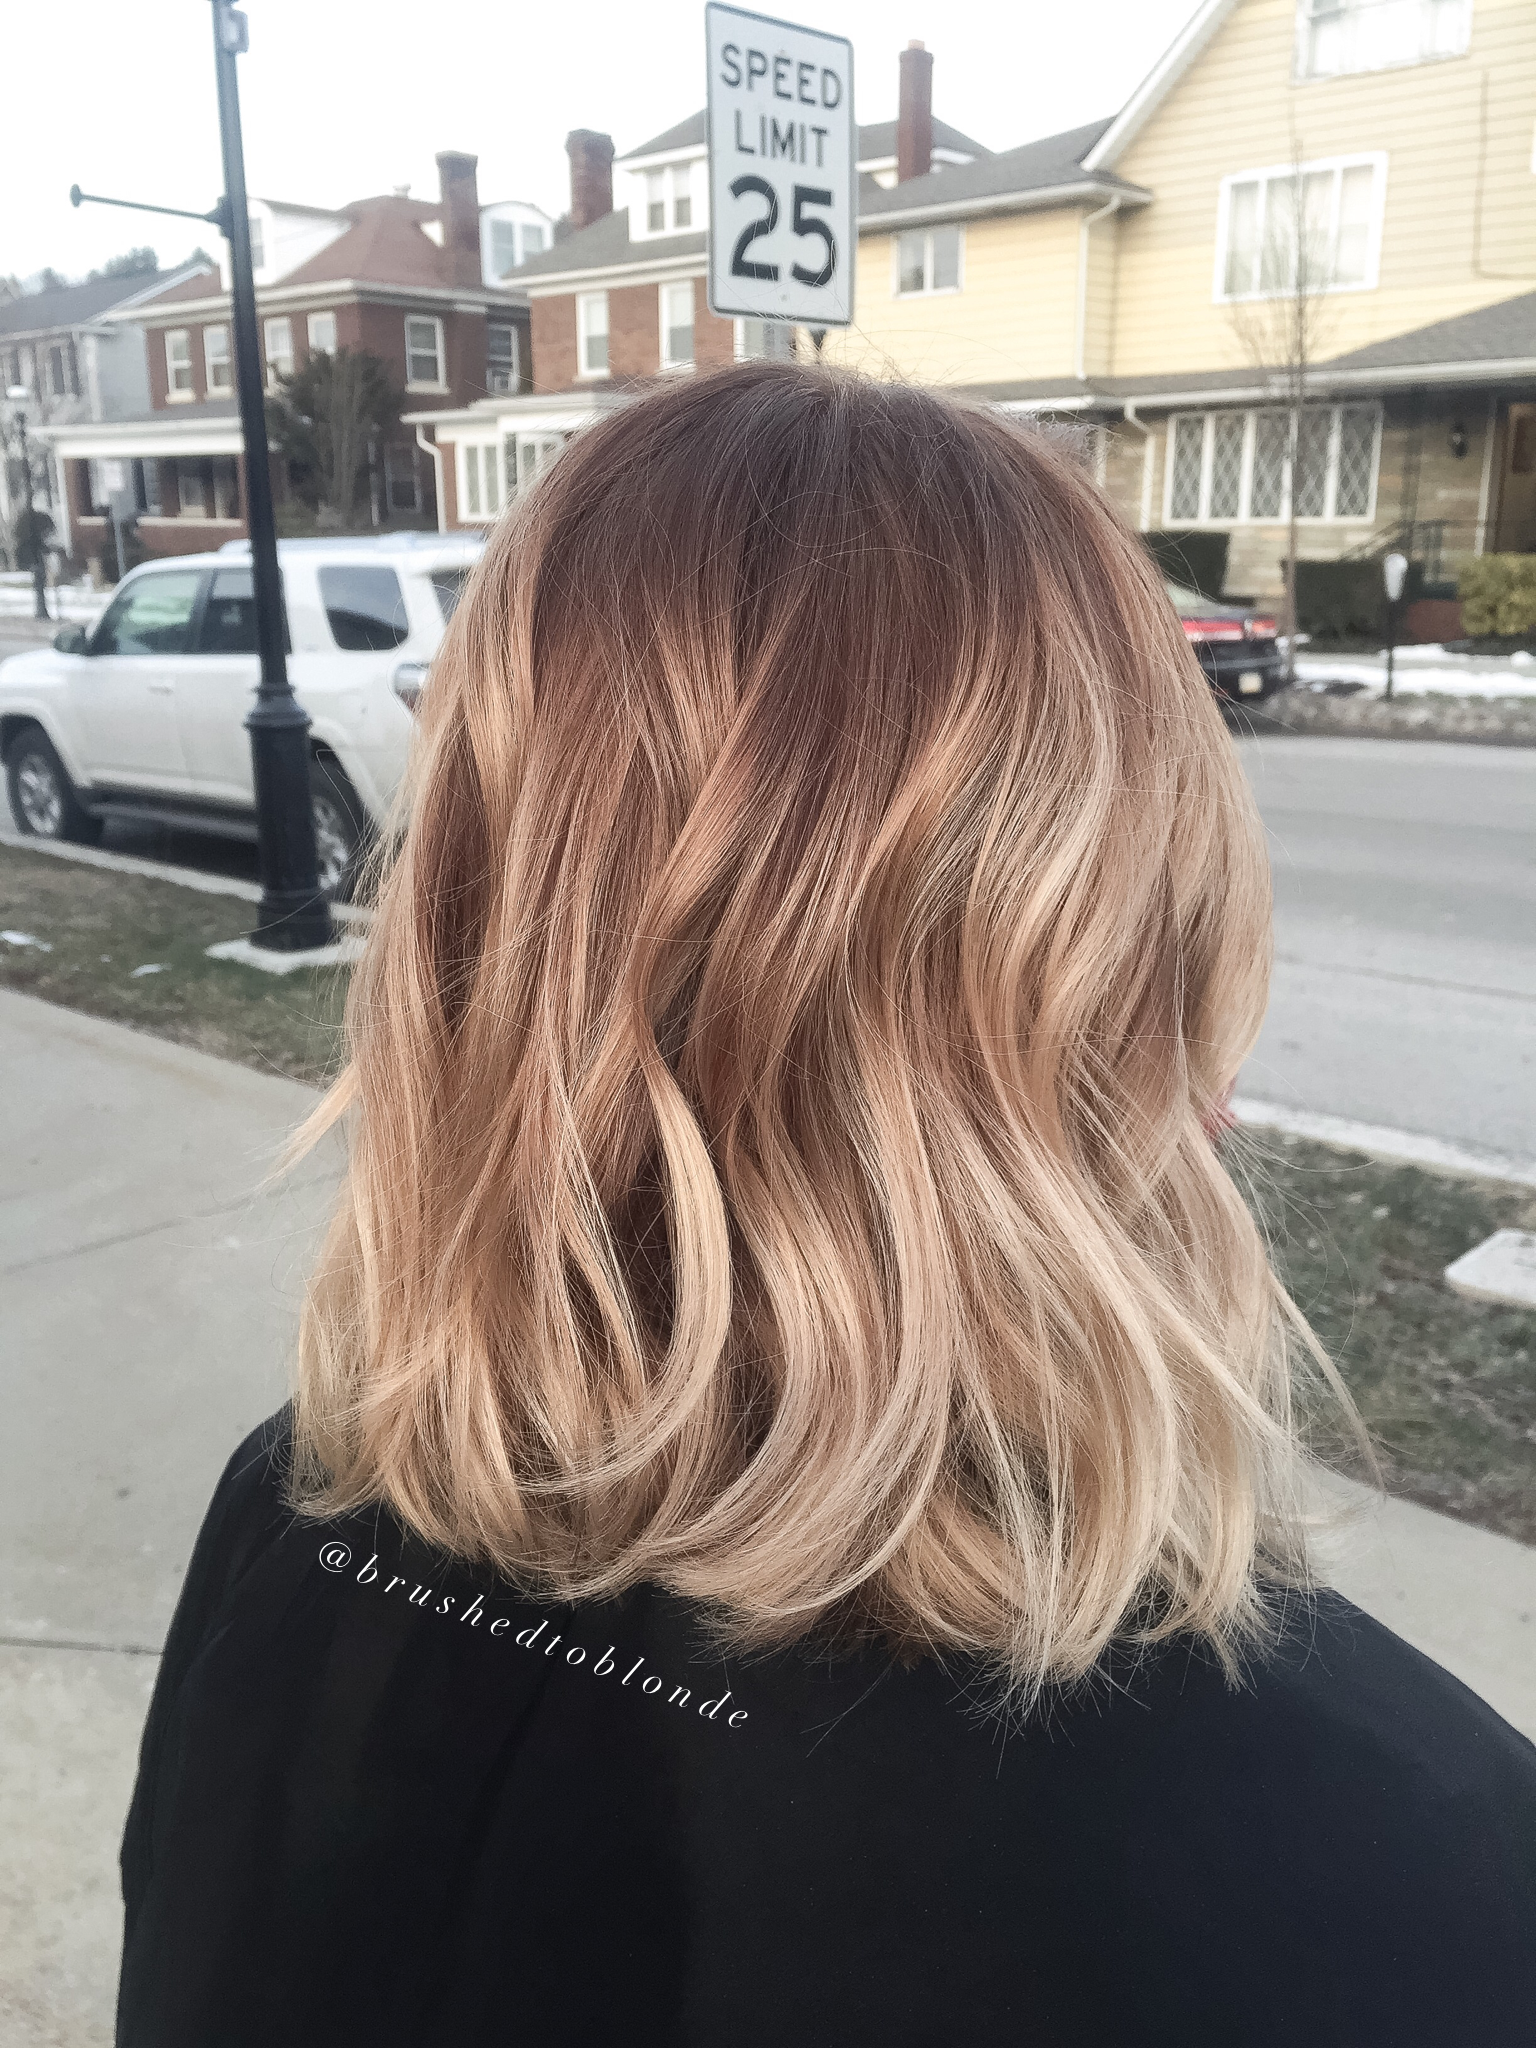 Top Selections of Options for Blonde Highlights recommendations